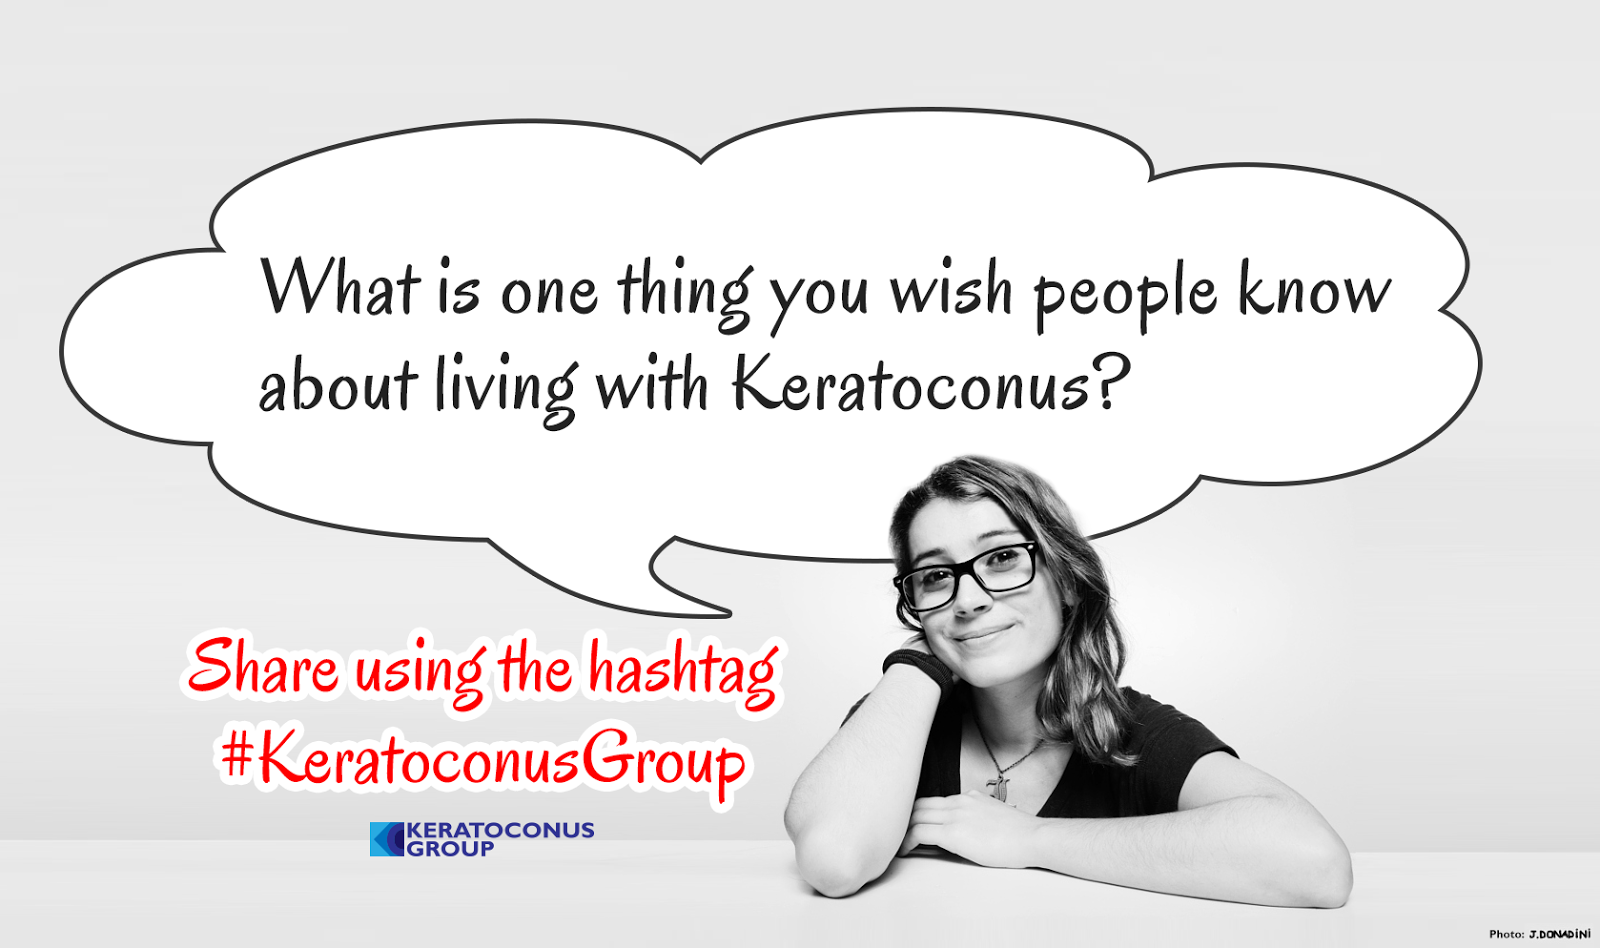 What is one thing you wish people know about living with Keratoconus?